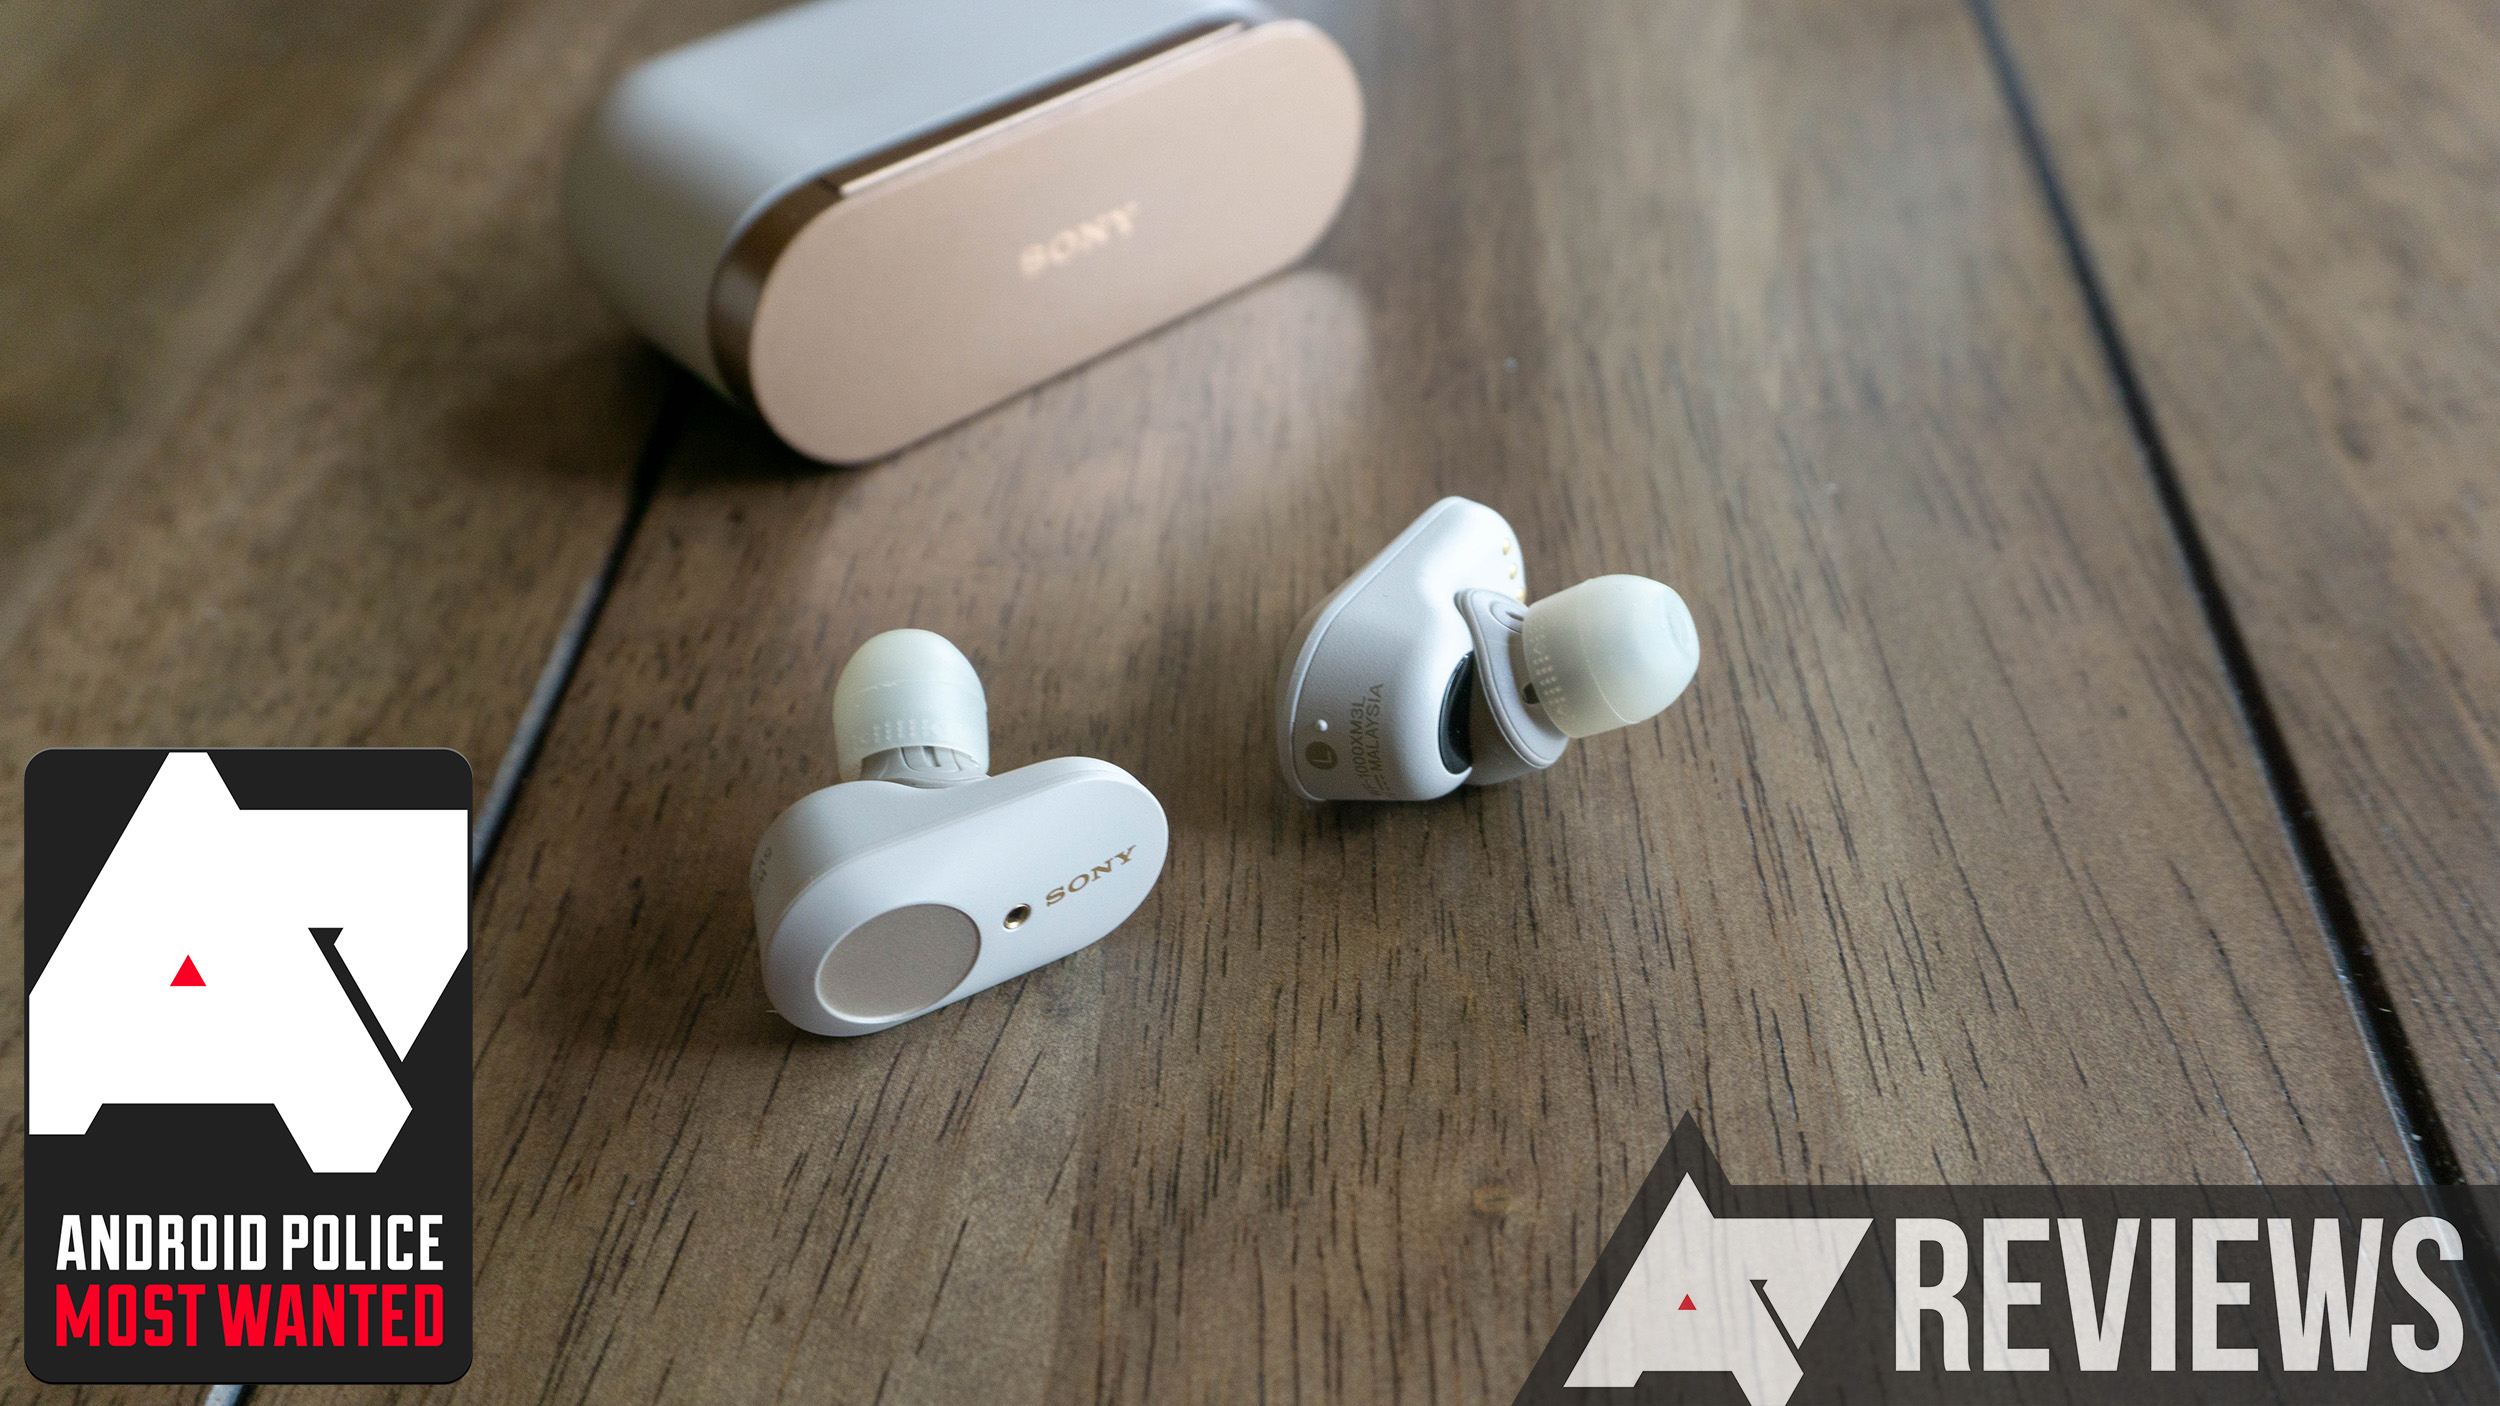 Sony Wf 1000xm3 Review The Current King Of True Wireless Earbuds